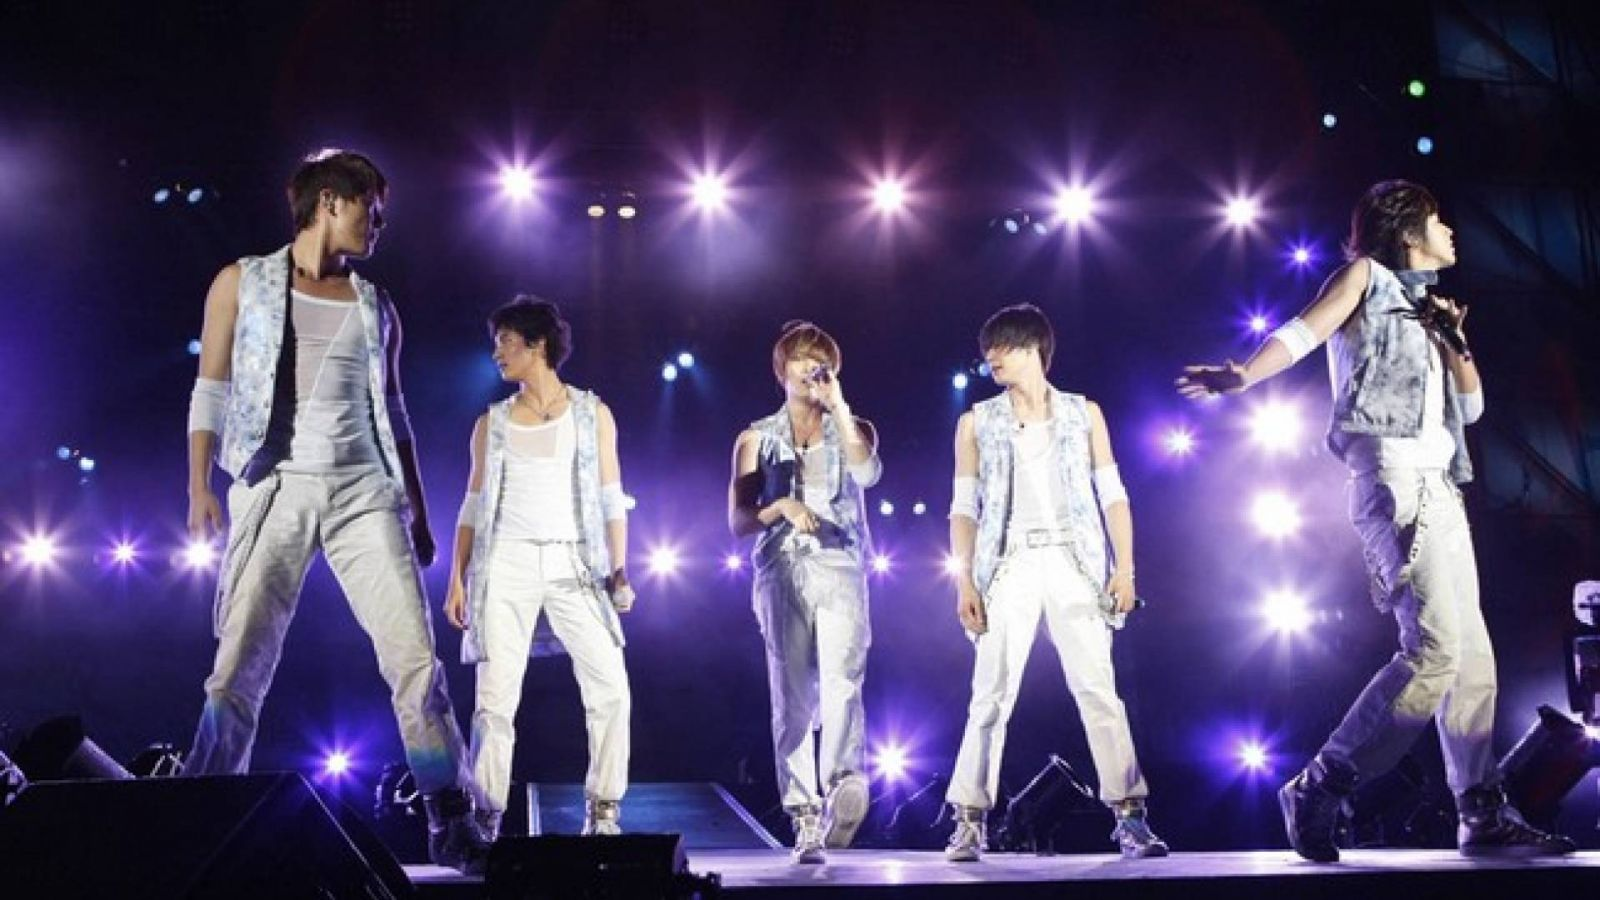 Les Tohoshinki (DBSK) au A-Nation 2009 © Avex Entertainment Inc.